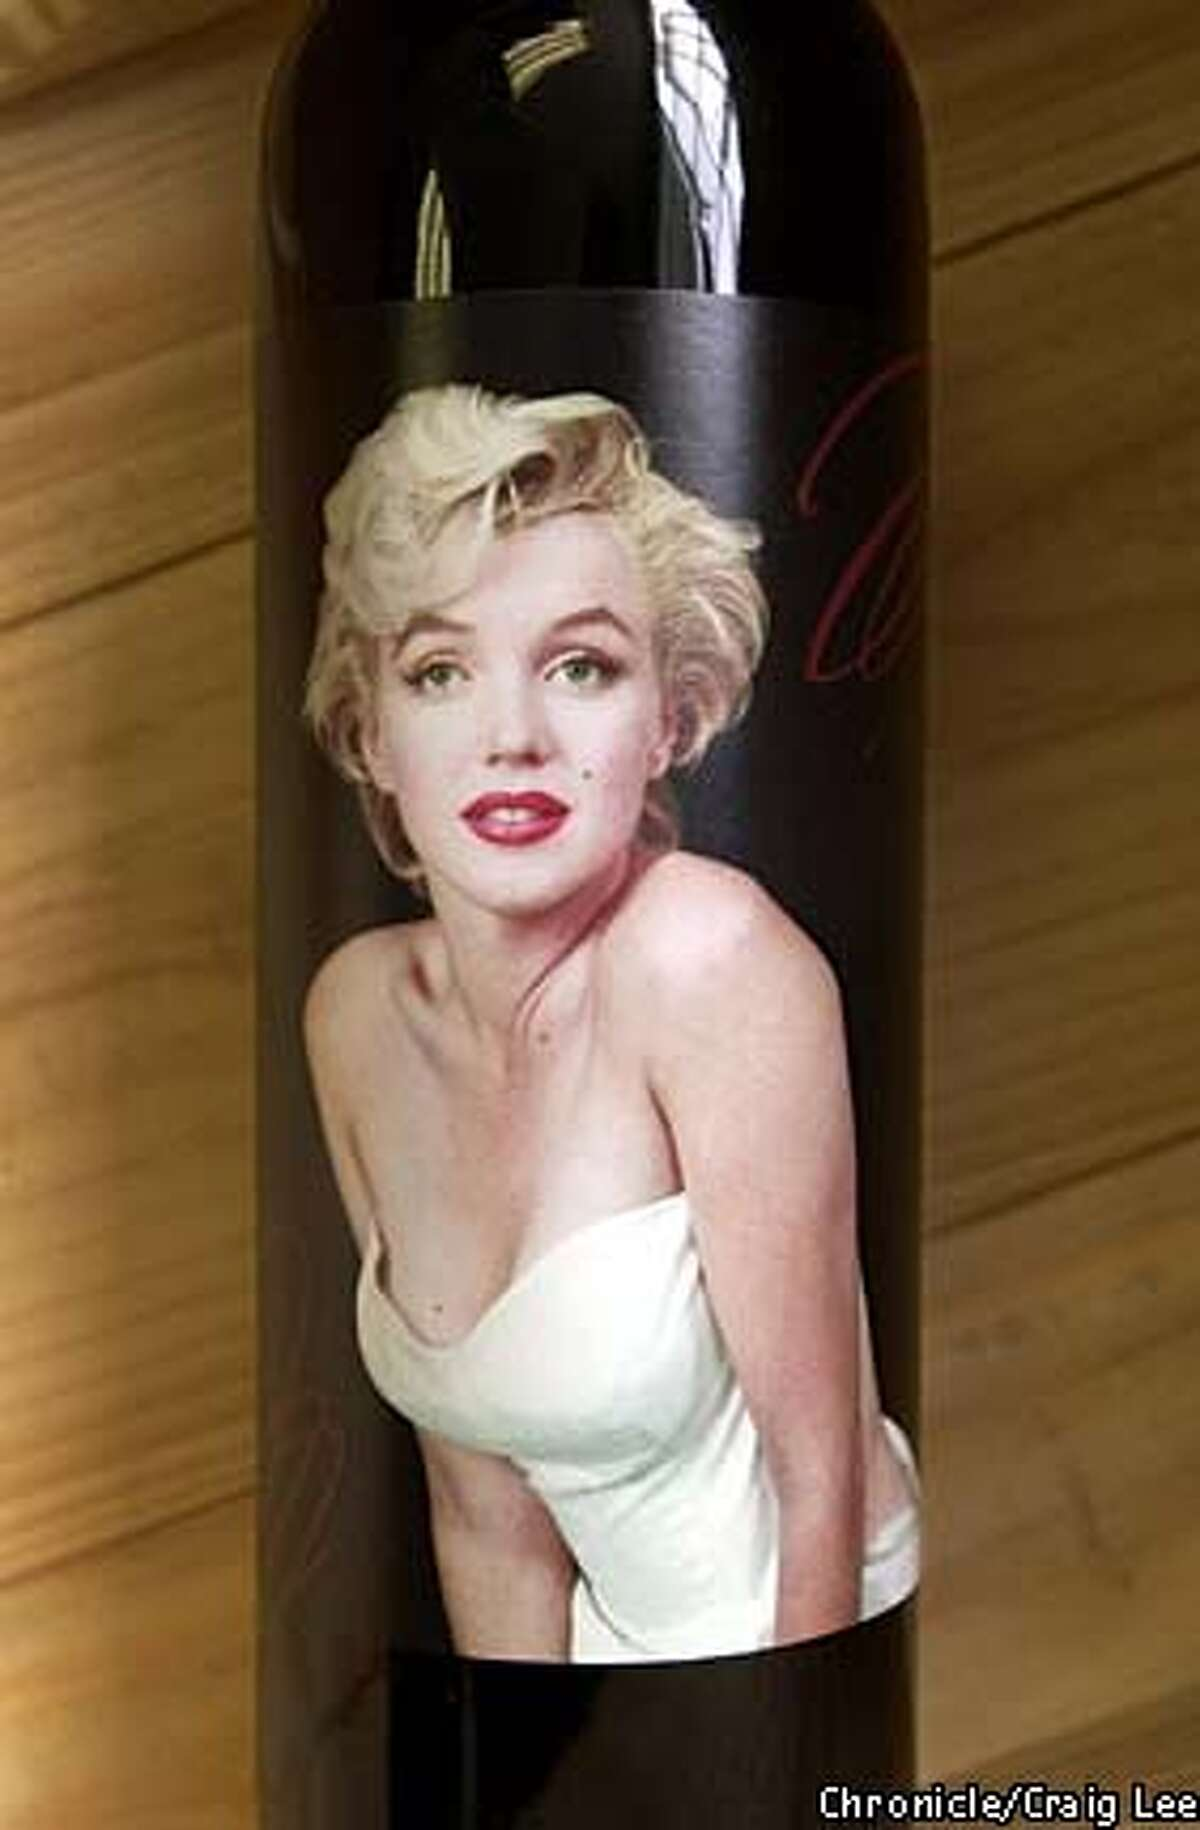 If it looks this good, who cares what Marilyn Merlot tastes like? Chronicle photo by Craig Lee